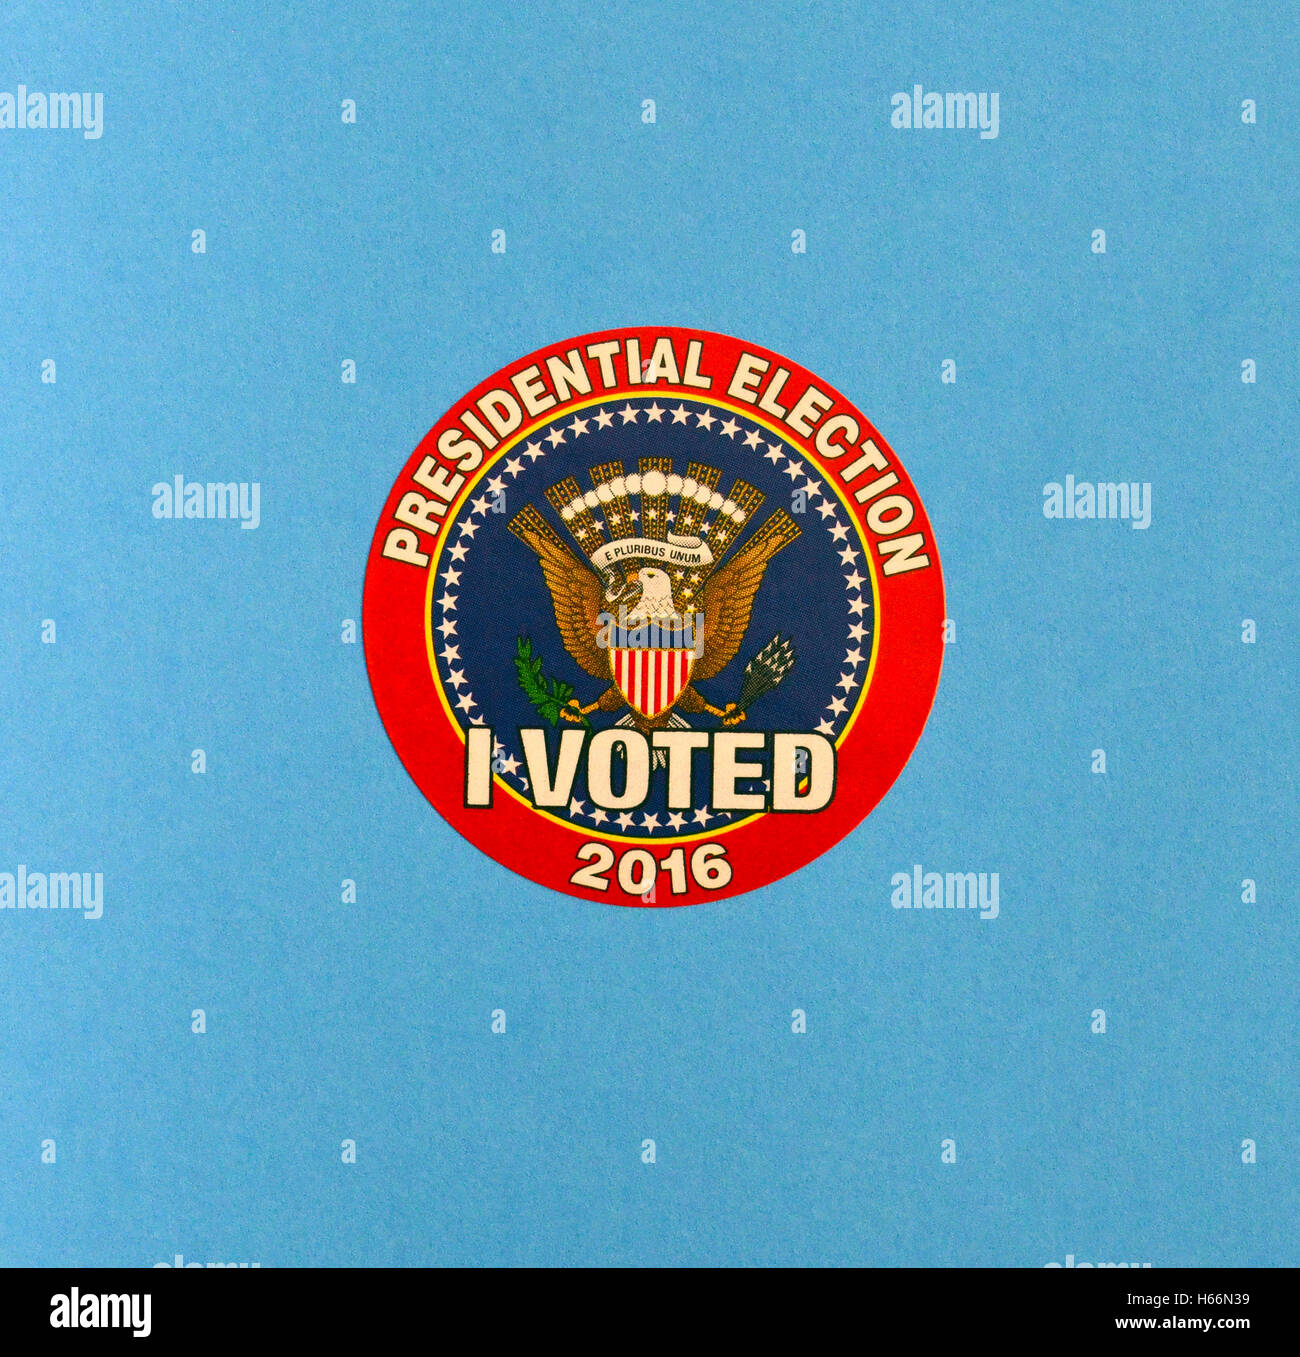 A colorful 'I VOTED' sticker is handed out to anyone voting in the 2016 United States Presidential Election. - Stock Image